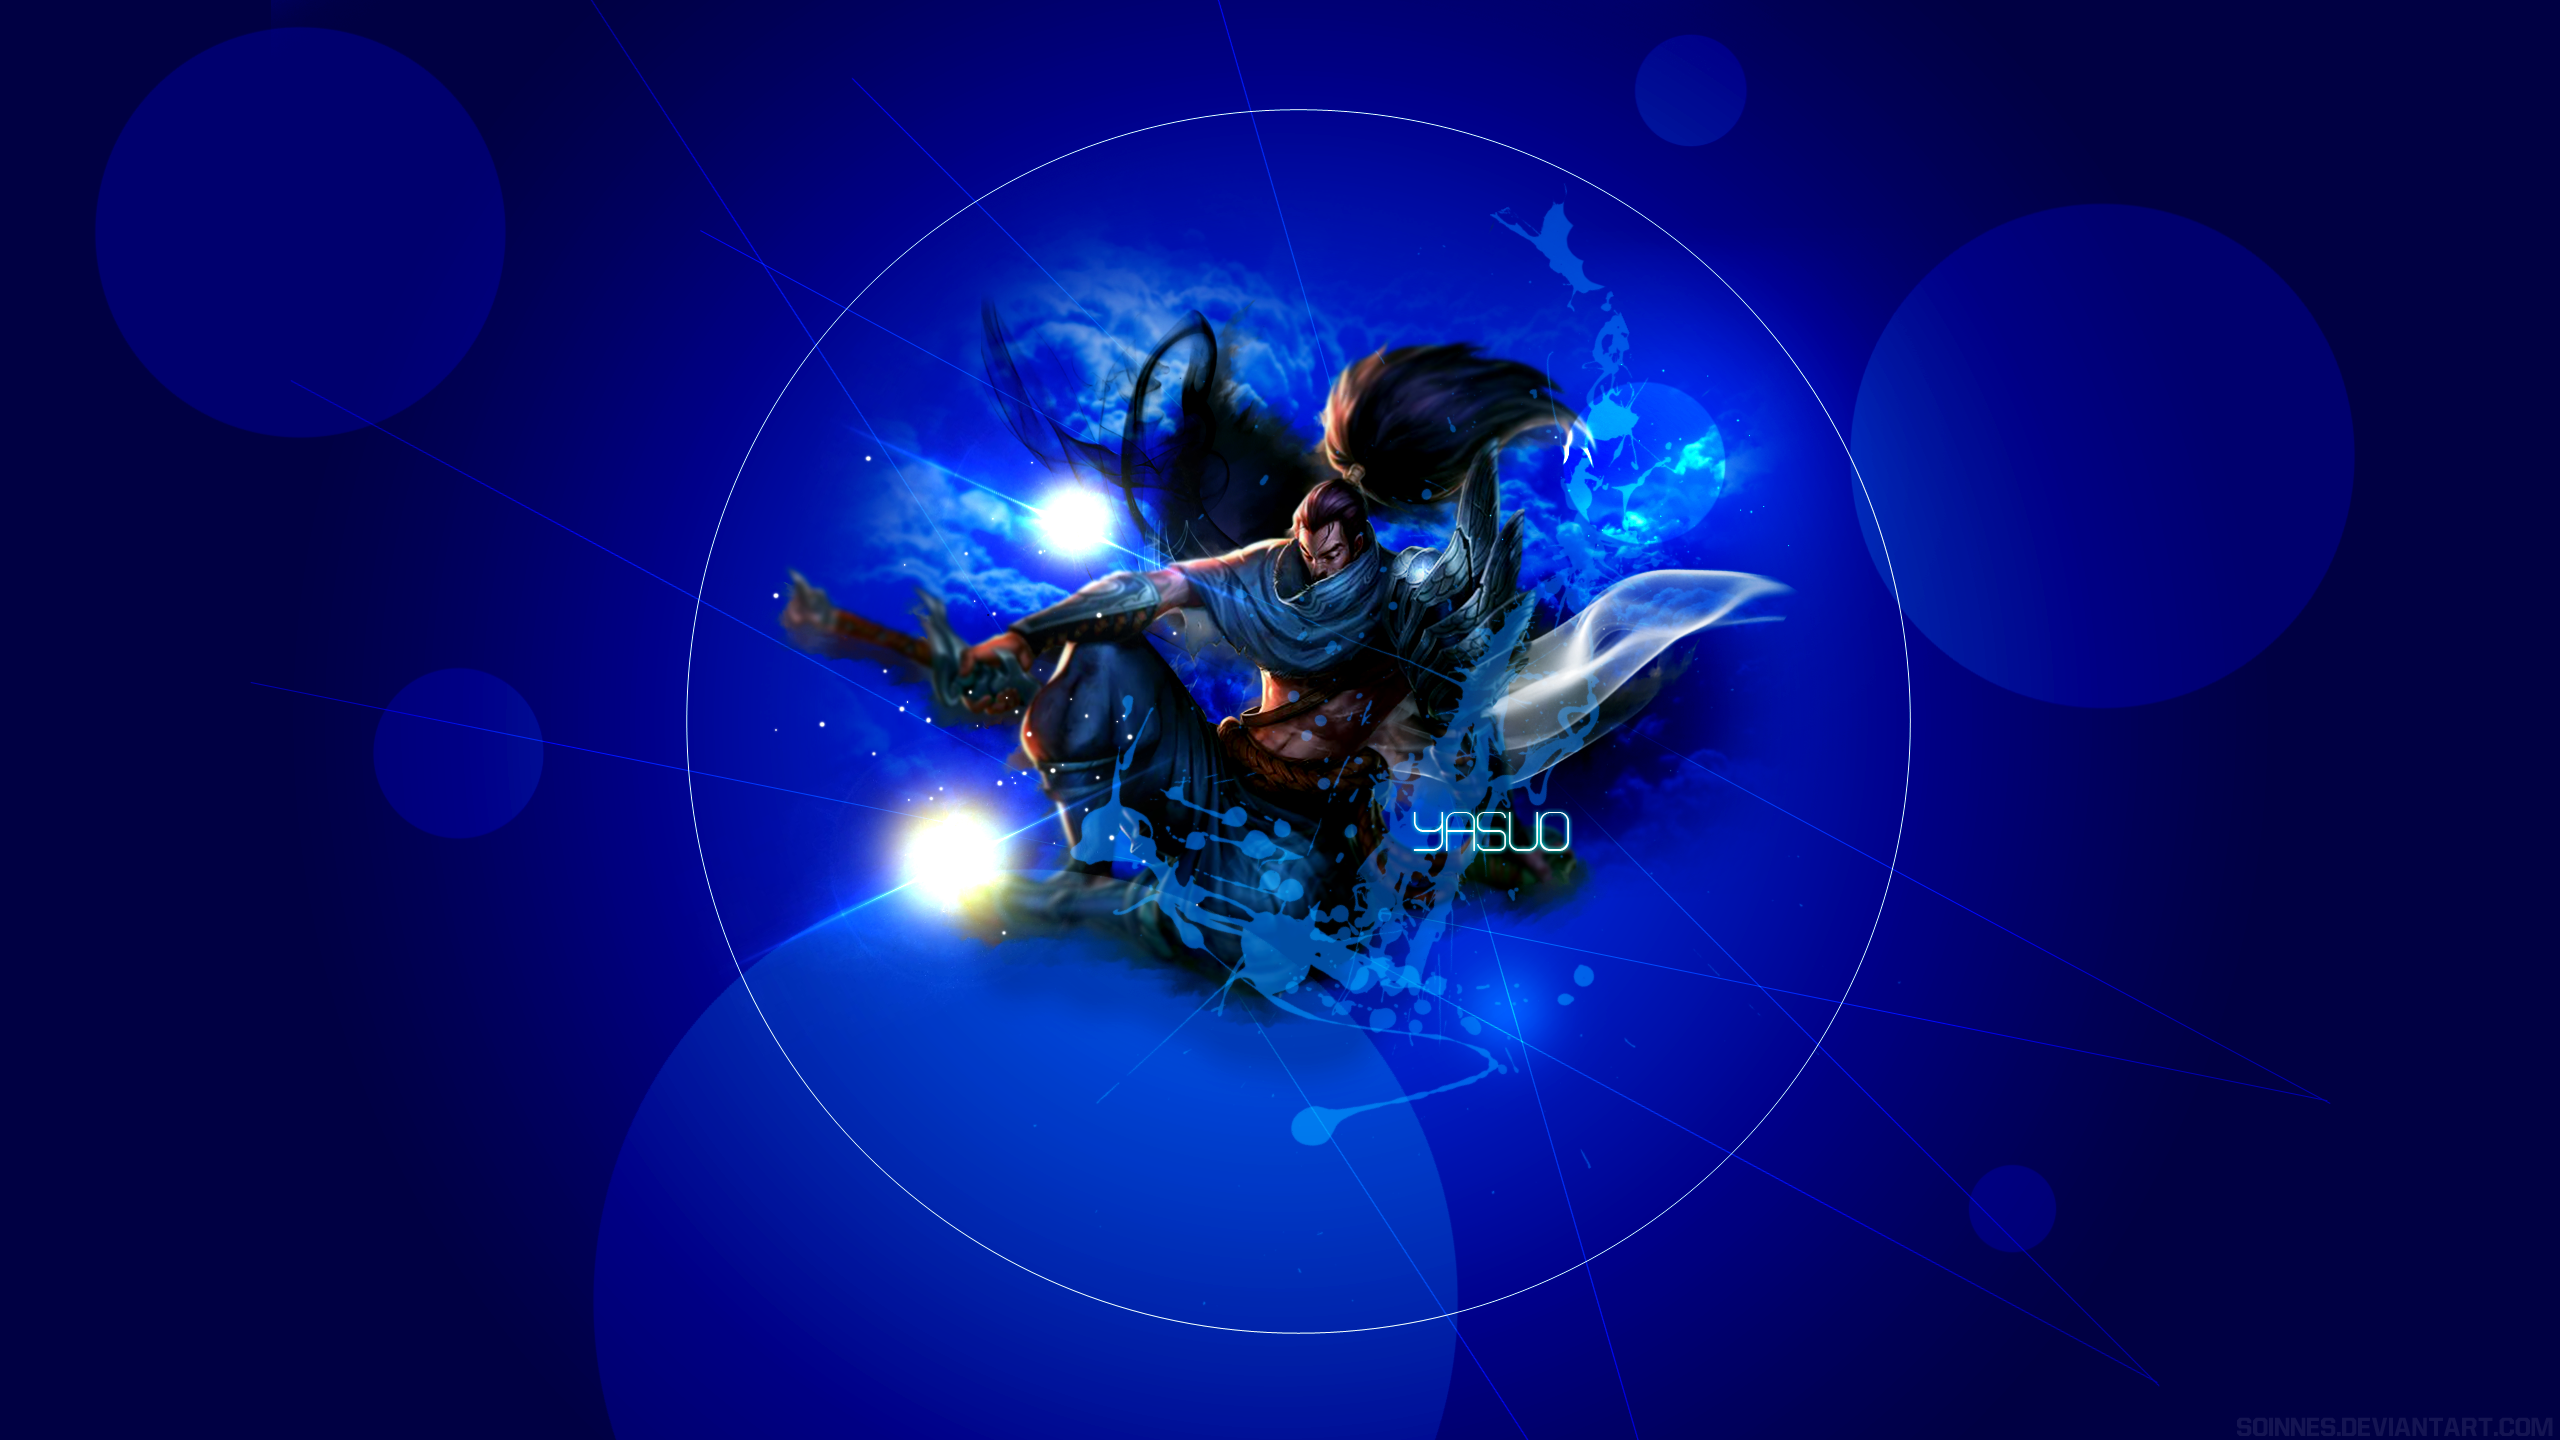 League of Legends Yasuo Wallpaper by Soinnes on DeviantArt